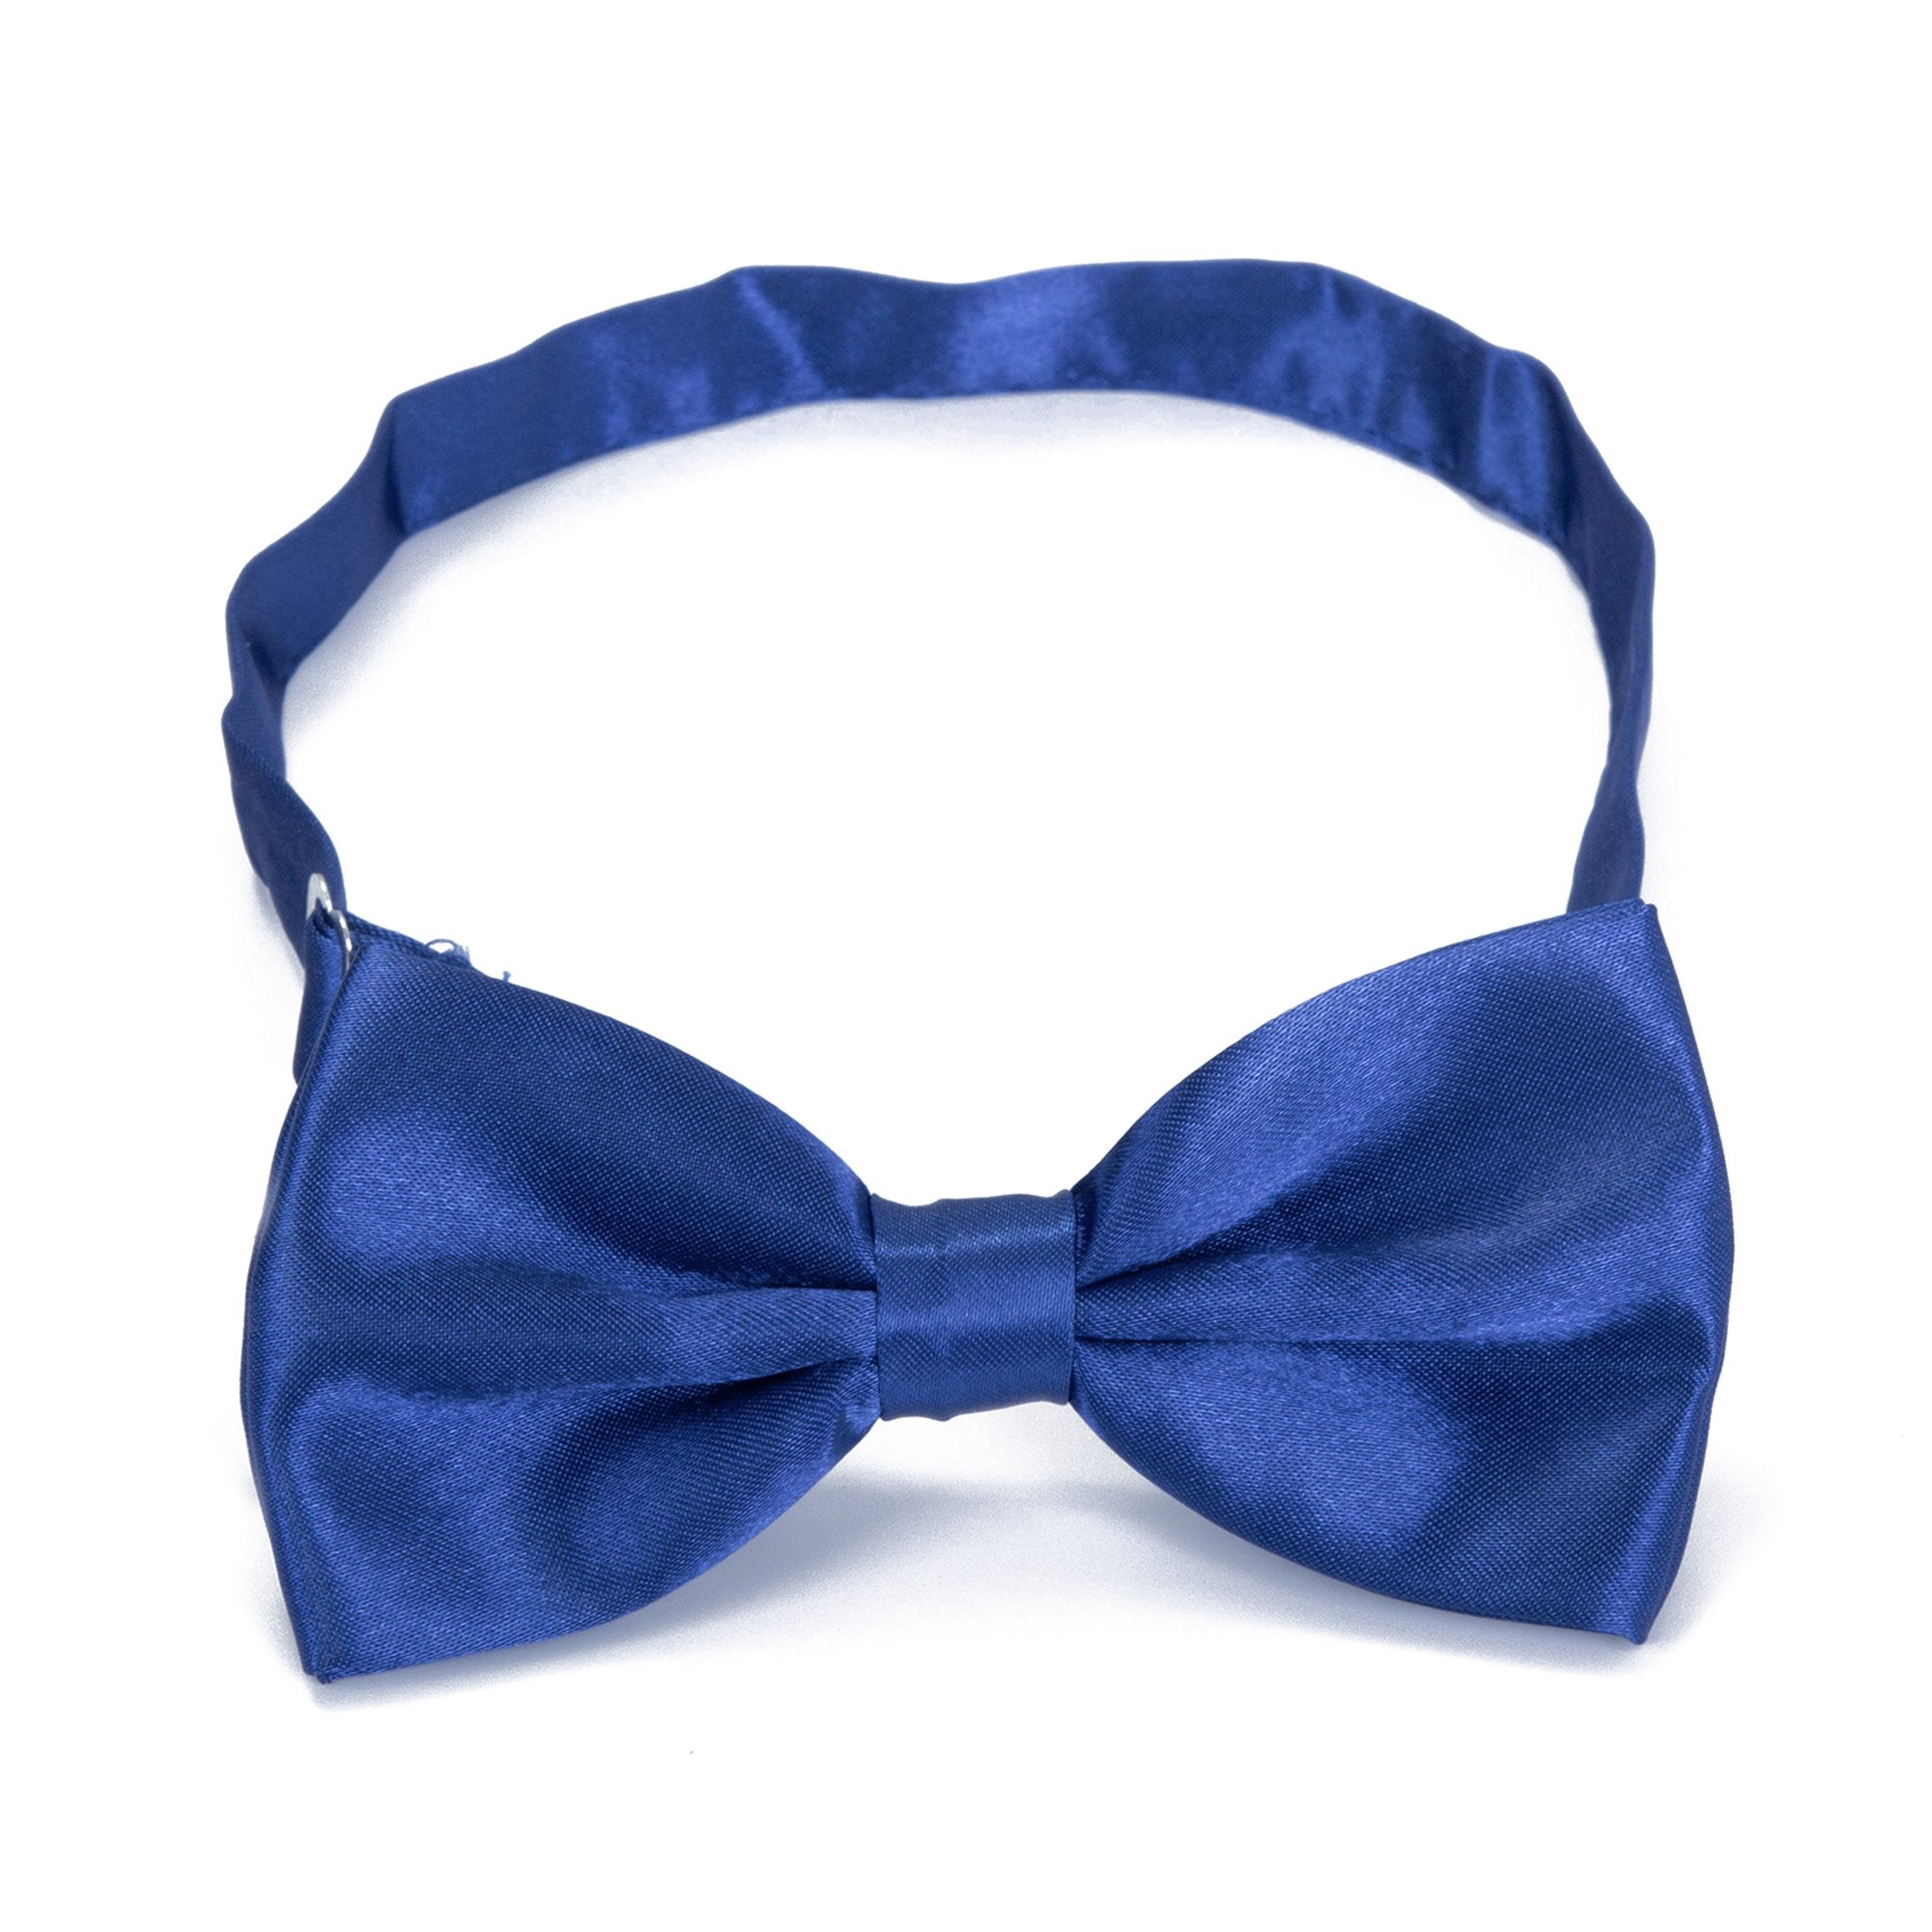 Boys Children Formal Bow Ties - 6 Pack of Solid Color Adjustable Pre Tied Bowties for Wedding Party (Royal Blue) by Kajeer (Image #3)